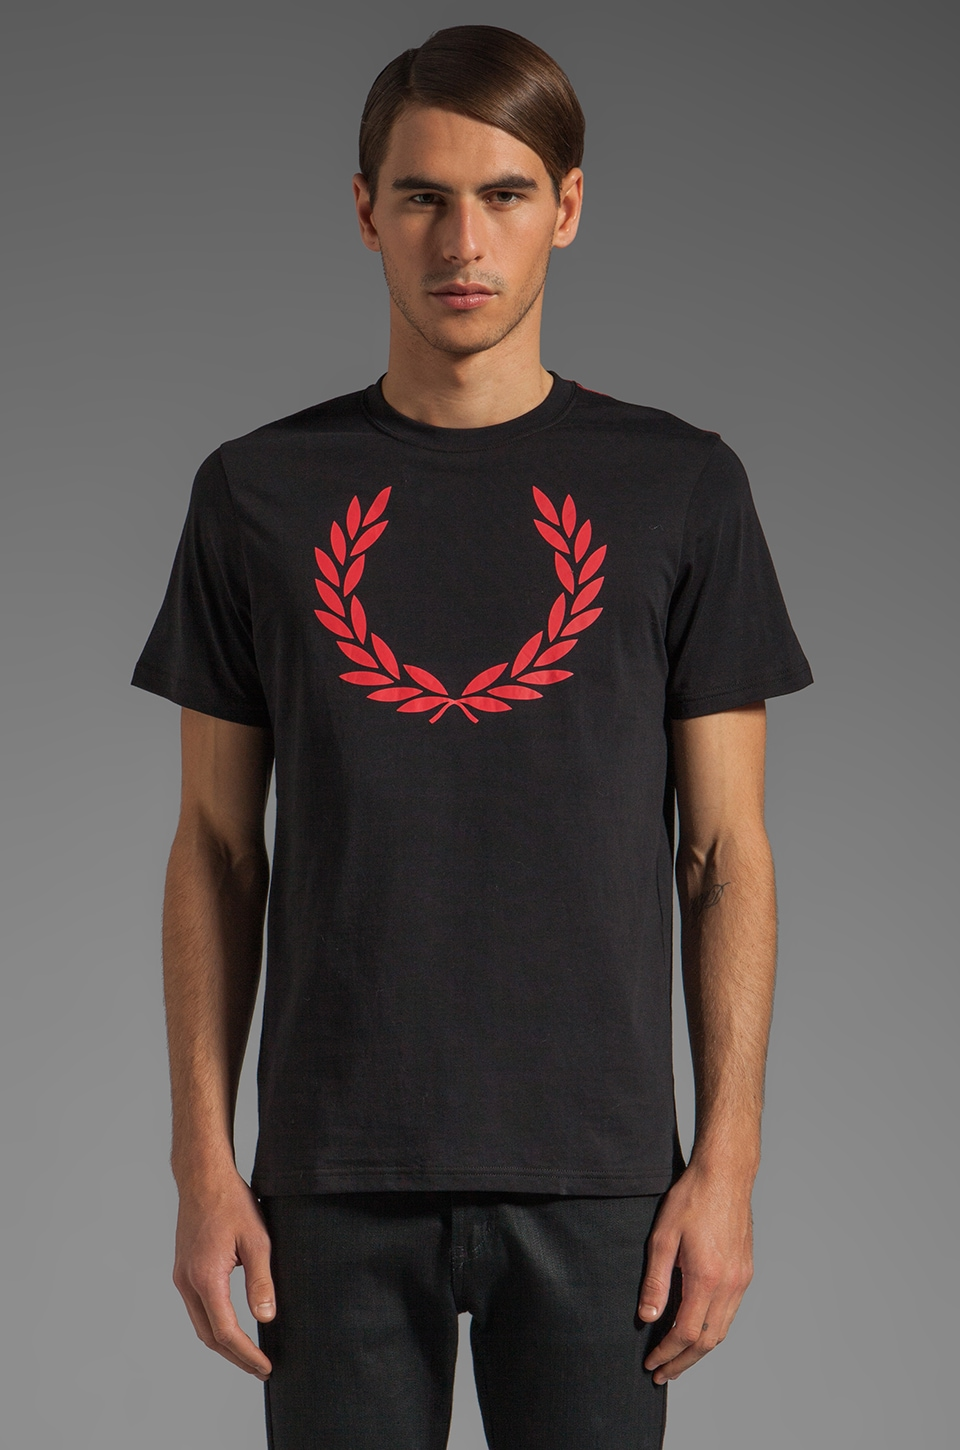 Fred Perry Laurel Print T-Shirt in Black/Hibiscus Pink